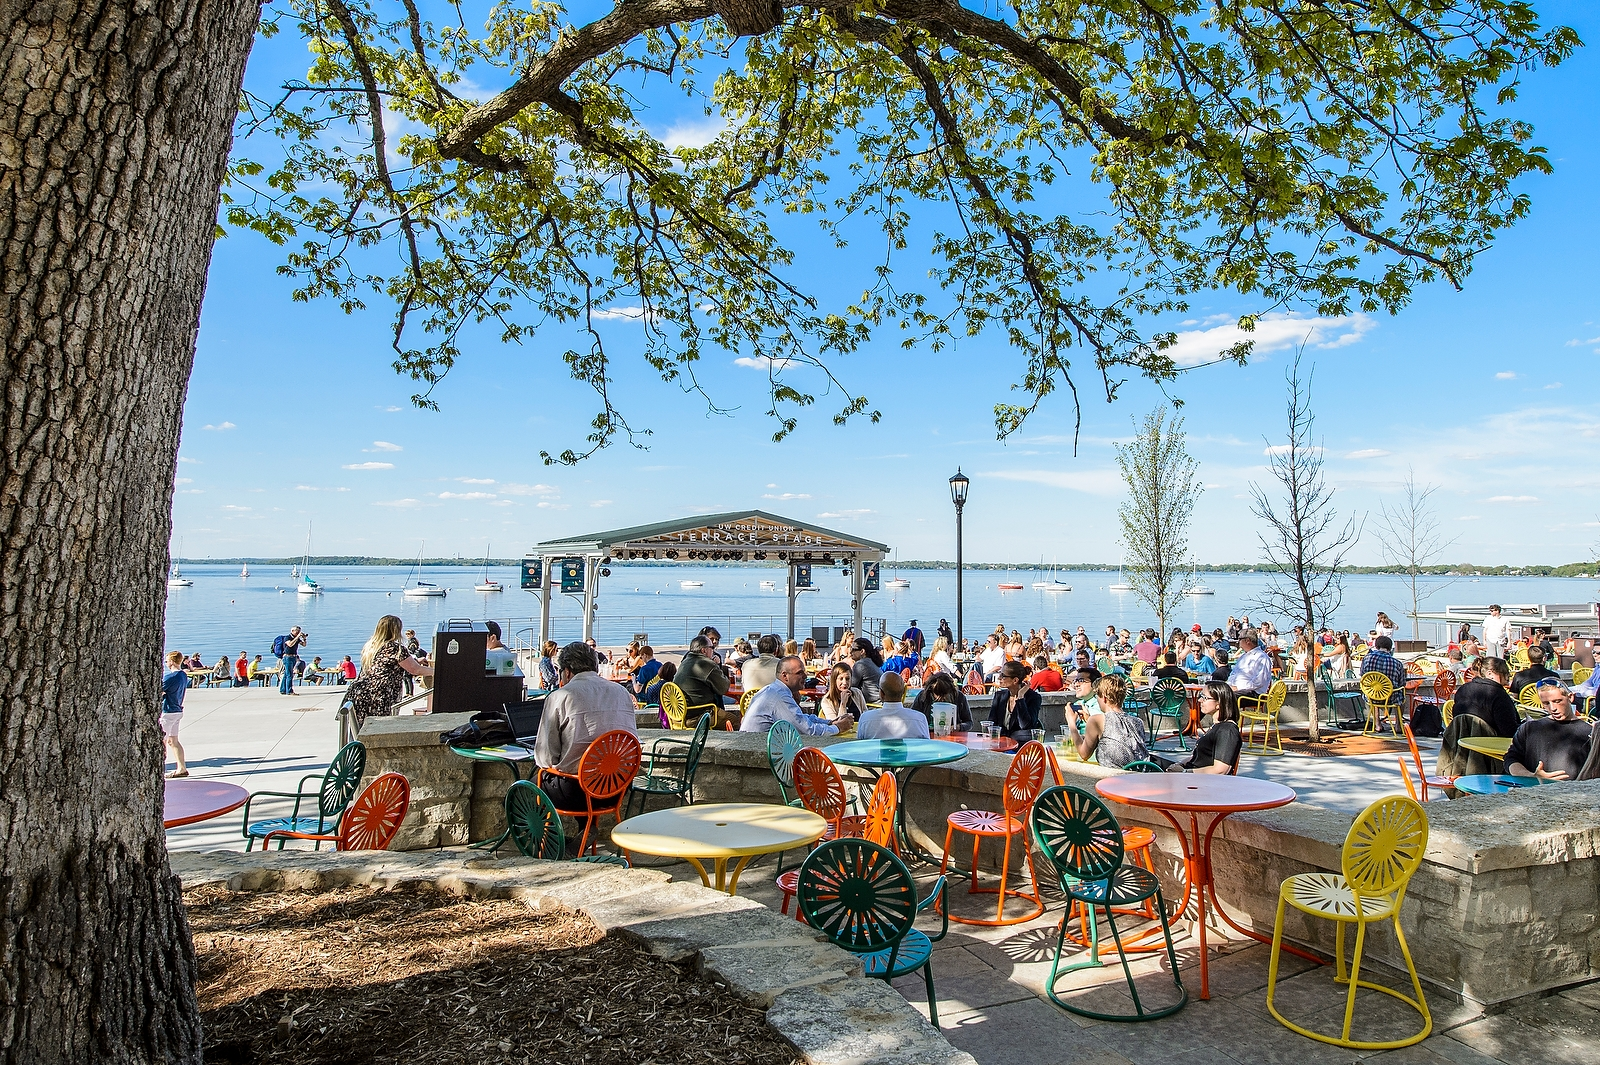 Visitors enjoy the Memorial Union Terrace on a warm spring day, Lake Mendota in the background.